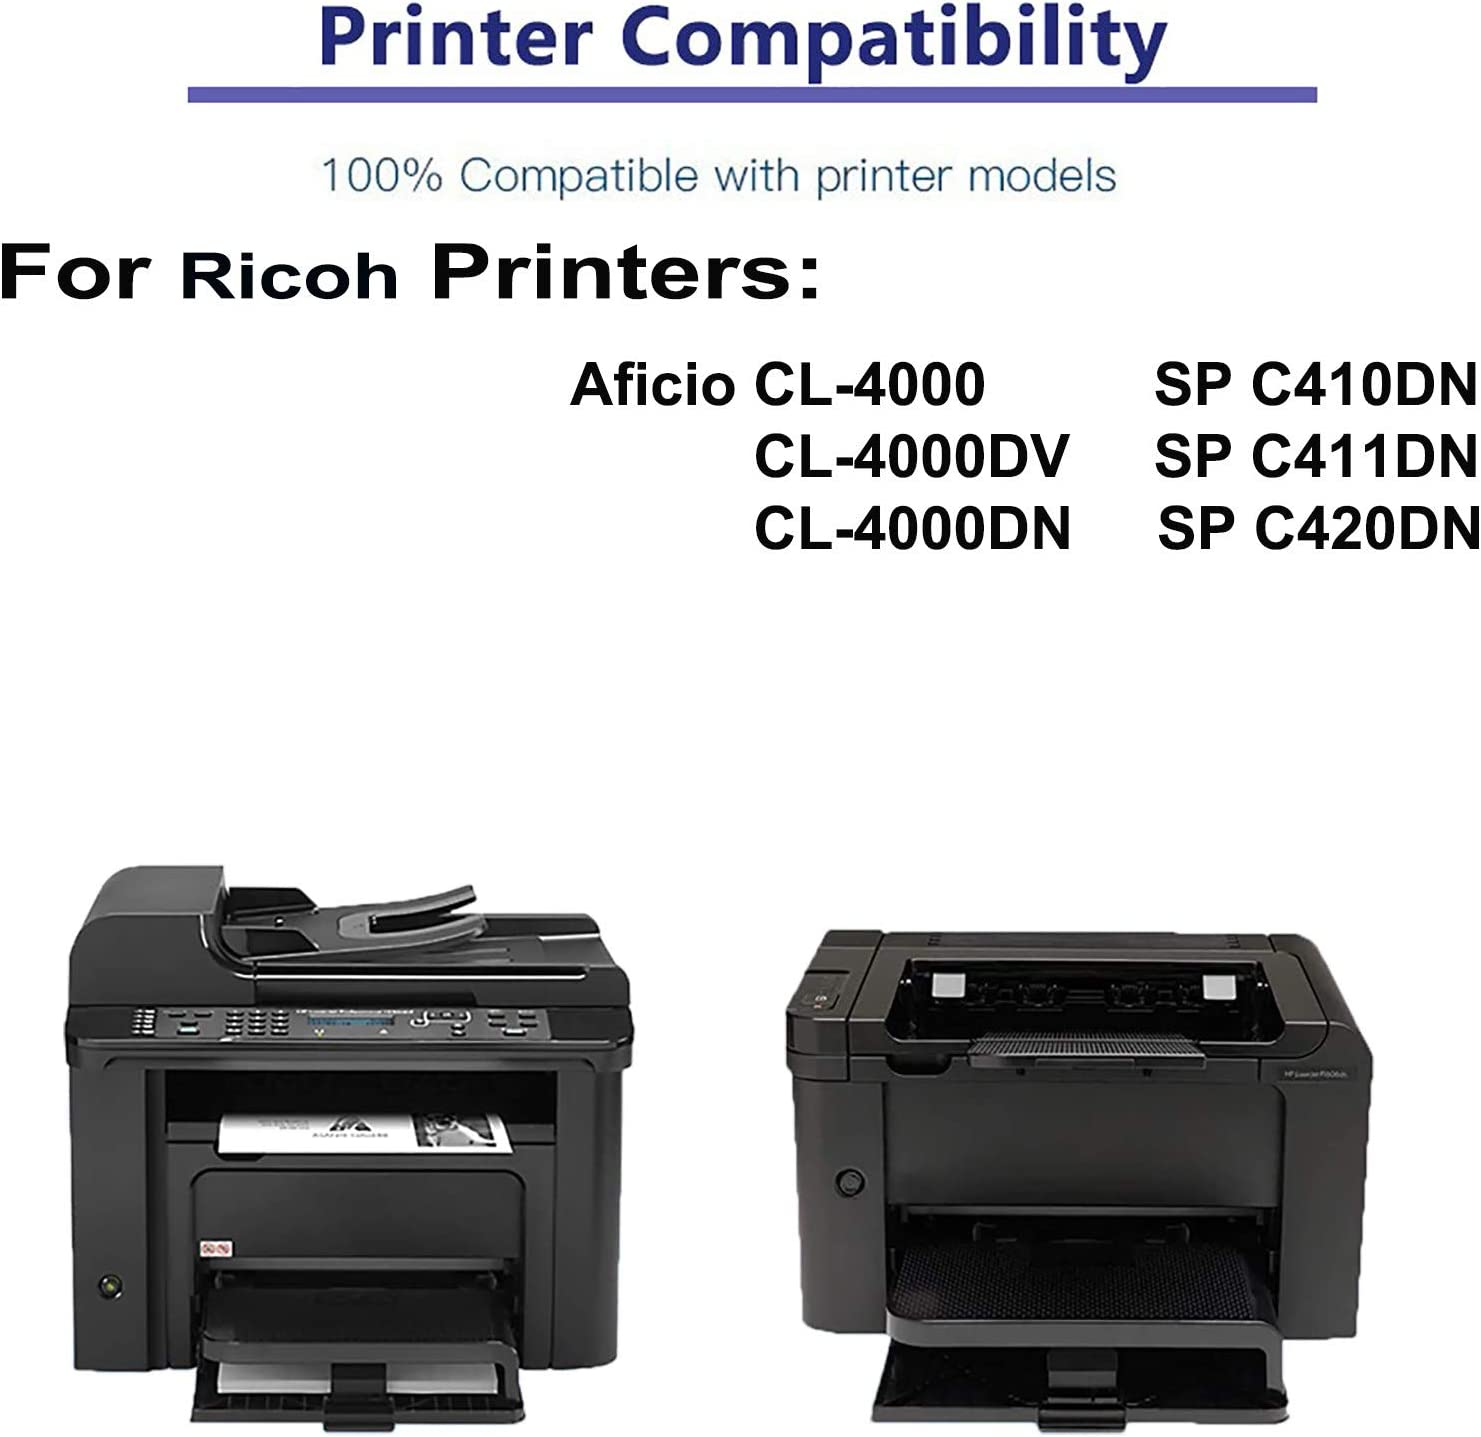 1-Pack (Cyan) Compatible High Yield 888311 Laser Printer Toner Cartridge Used for Ricoh SP C411DN SP C420DN Printer